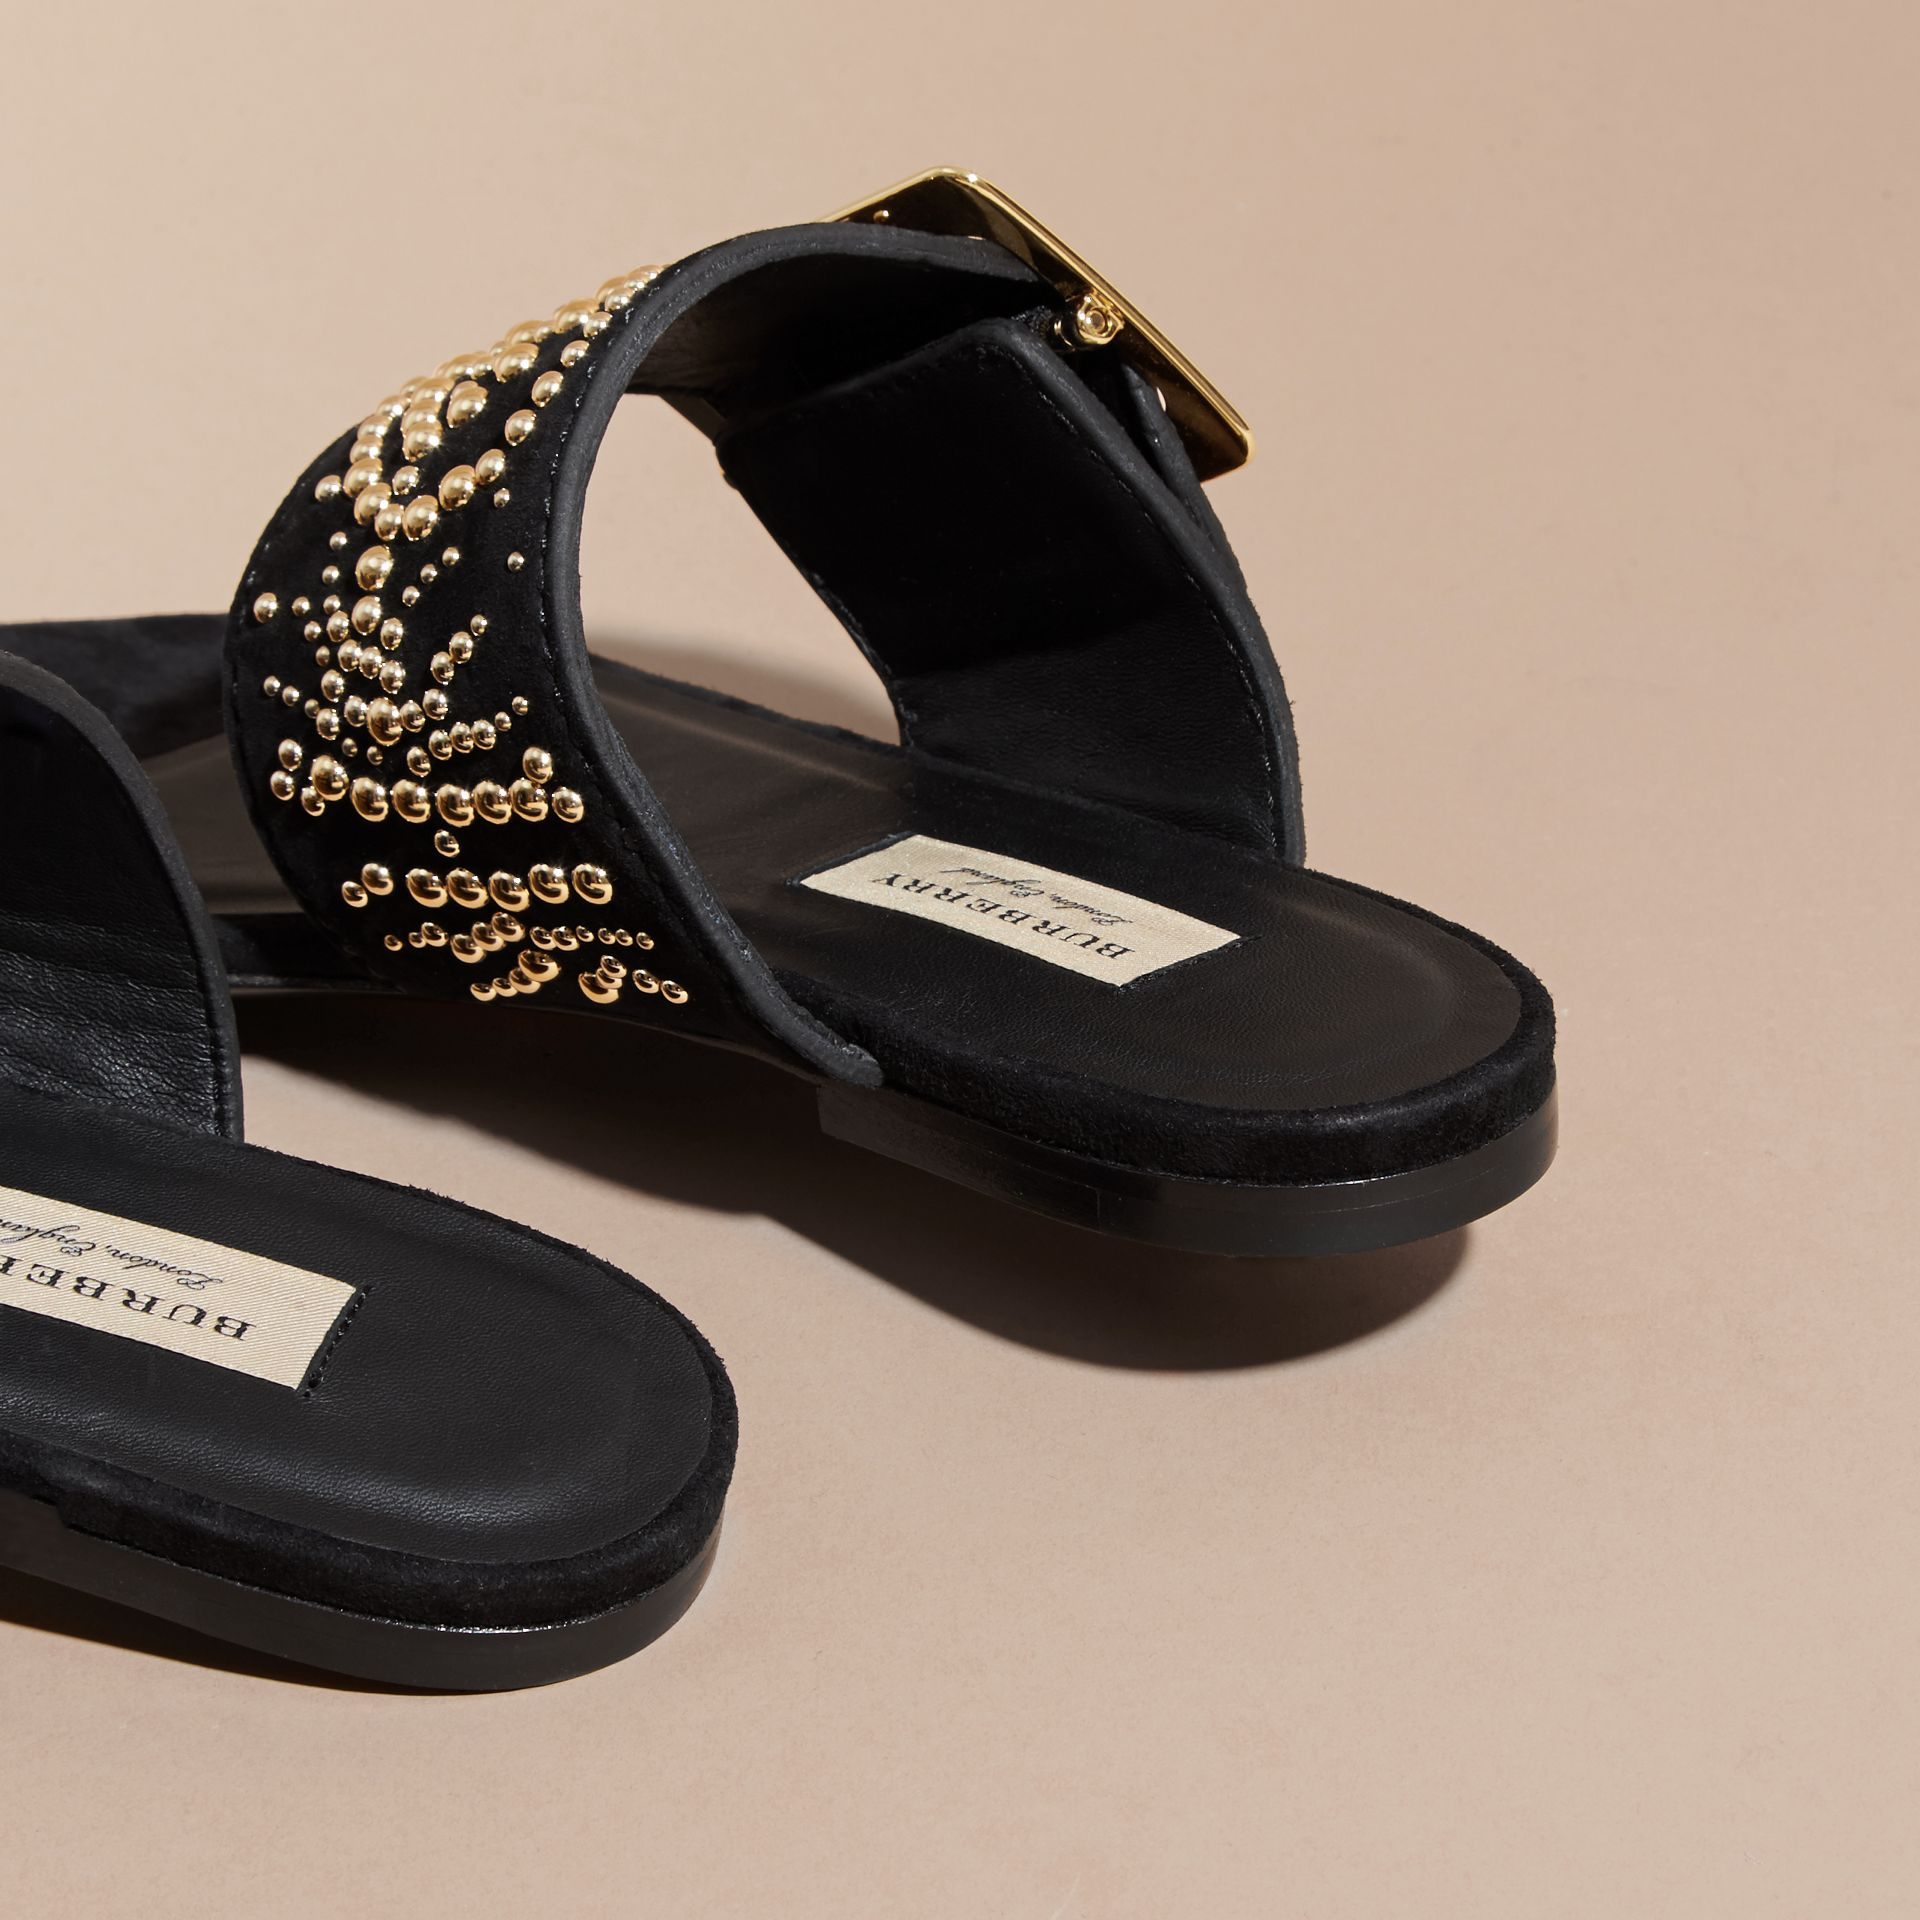 Studded Suede Sandals with Buckle Detail in Black - Women | Burberry - gallery image 5